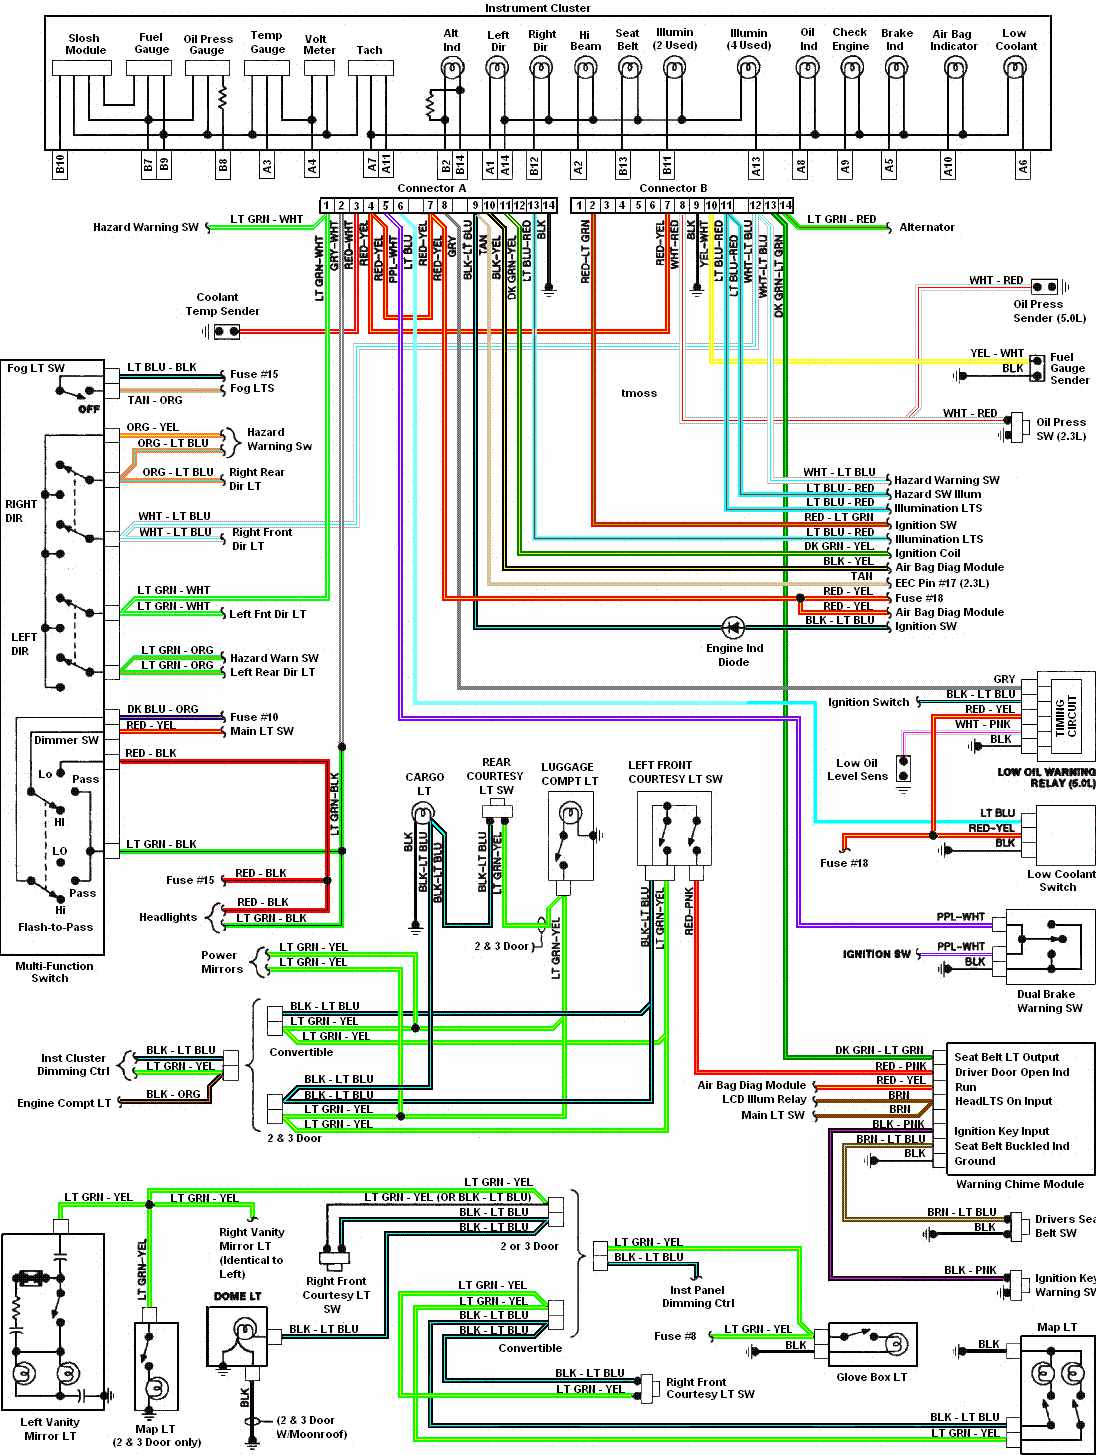 Instrument Cluster Wiring Diagrams Of Ford Mustang Rd Generation as well Honda Accord Fuse Box Diagram also Windows additionally  as well Ford F Battery Fuse Box Map. on 1996 honda civic power window wiring diagram